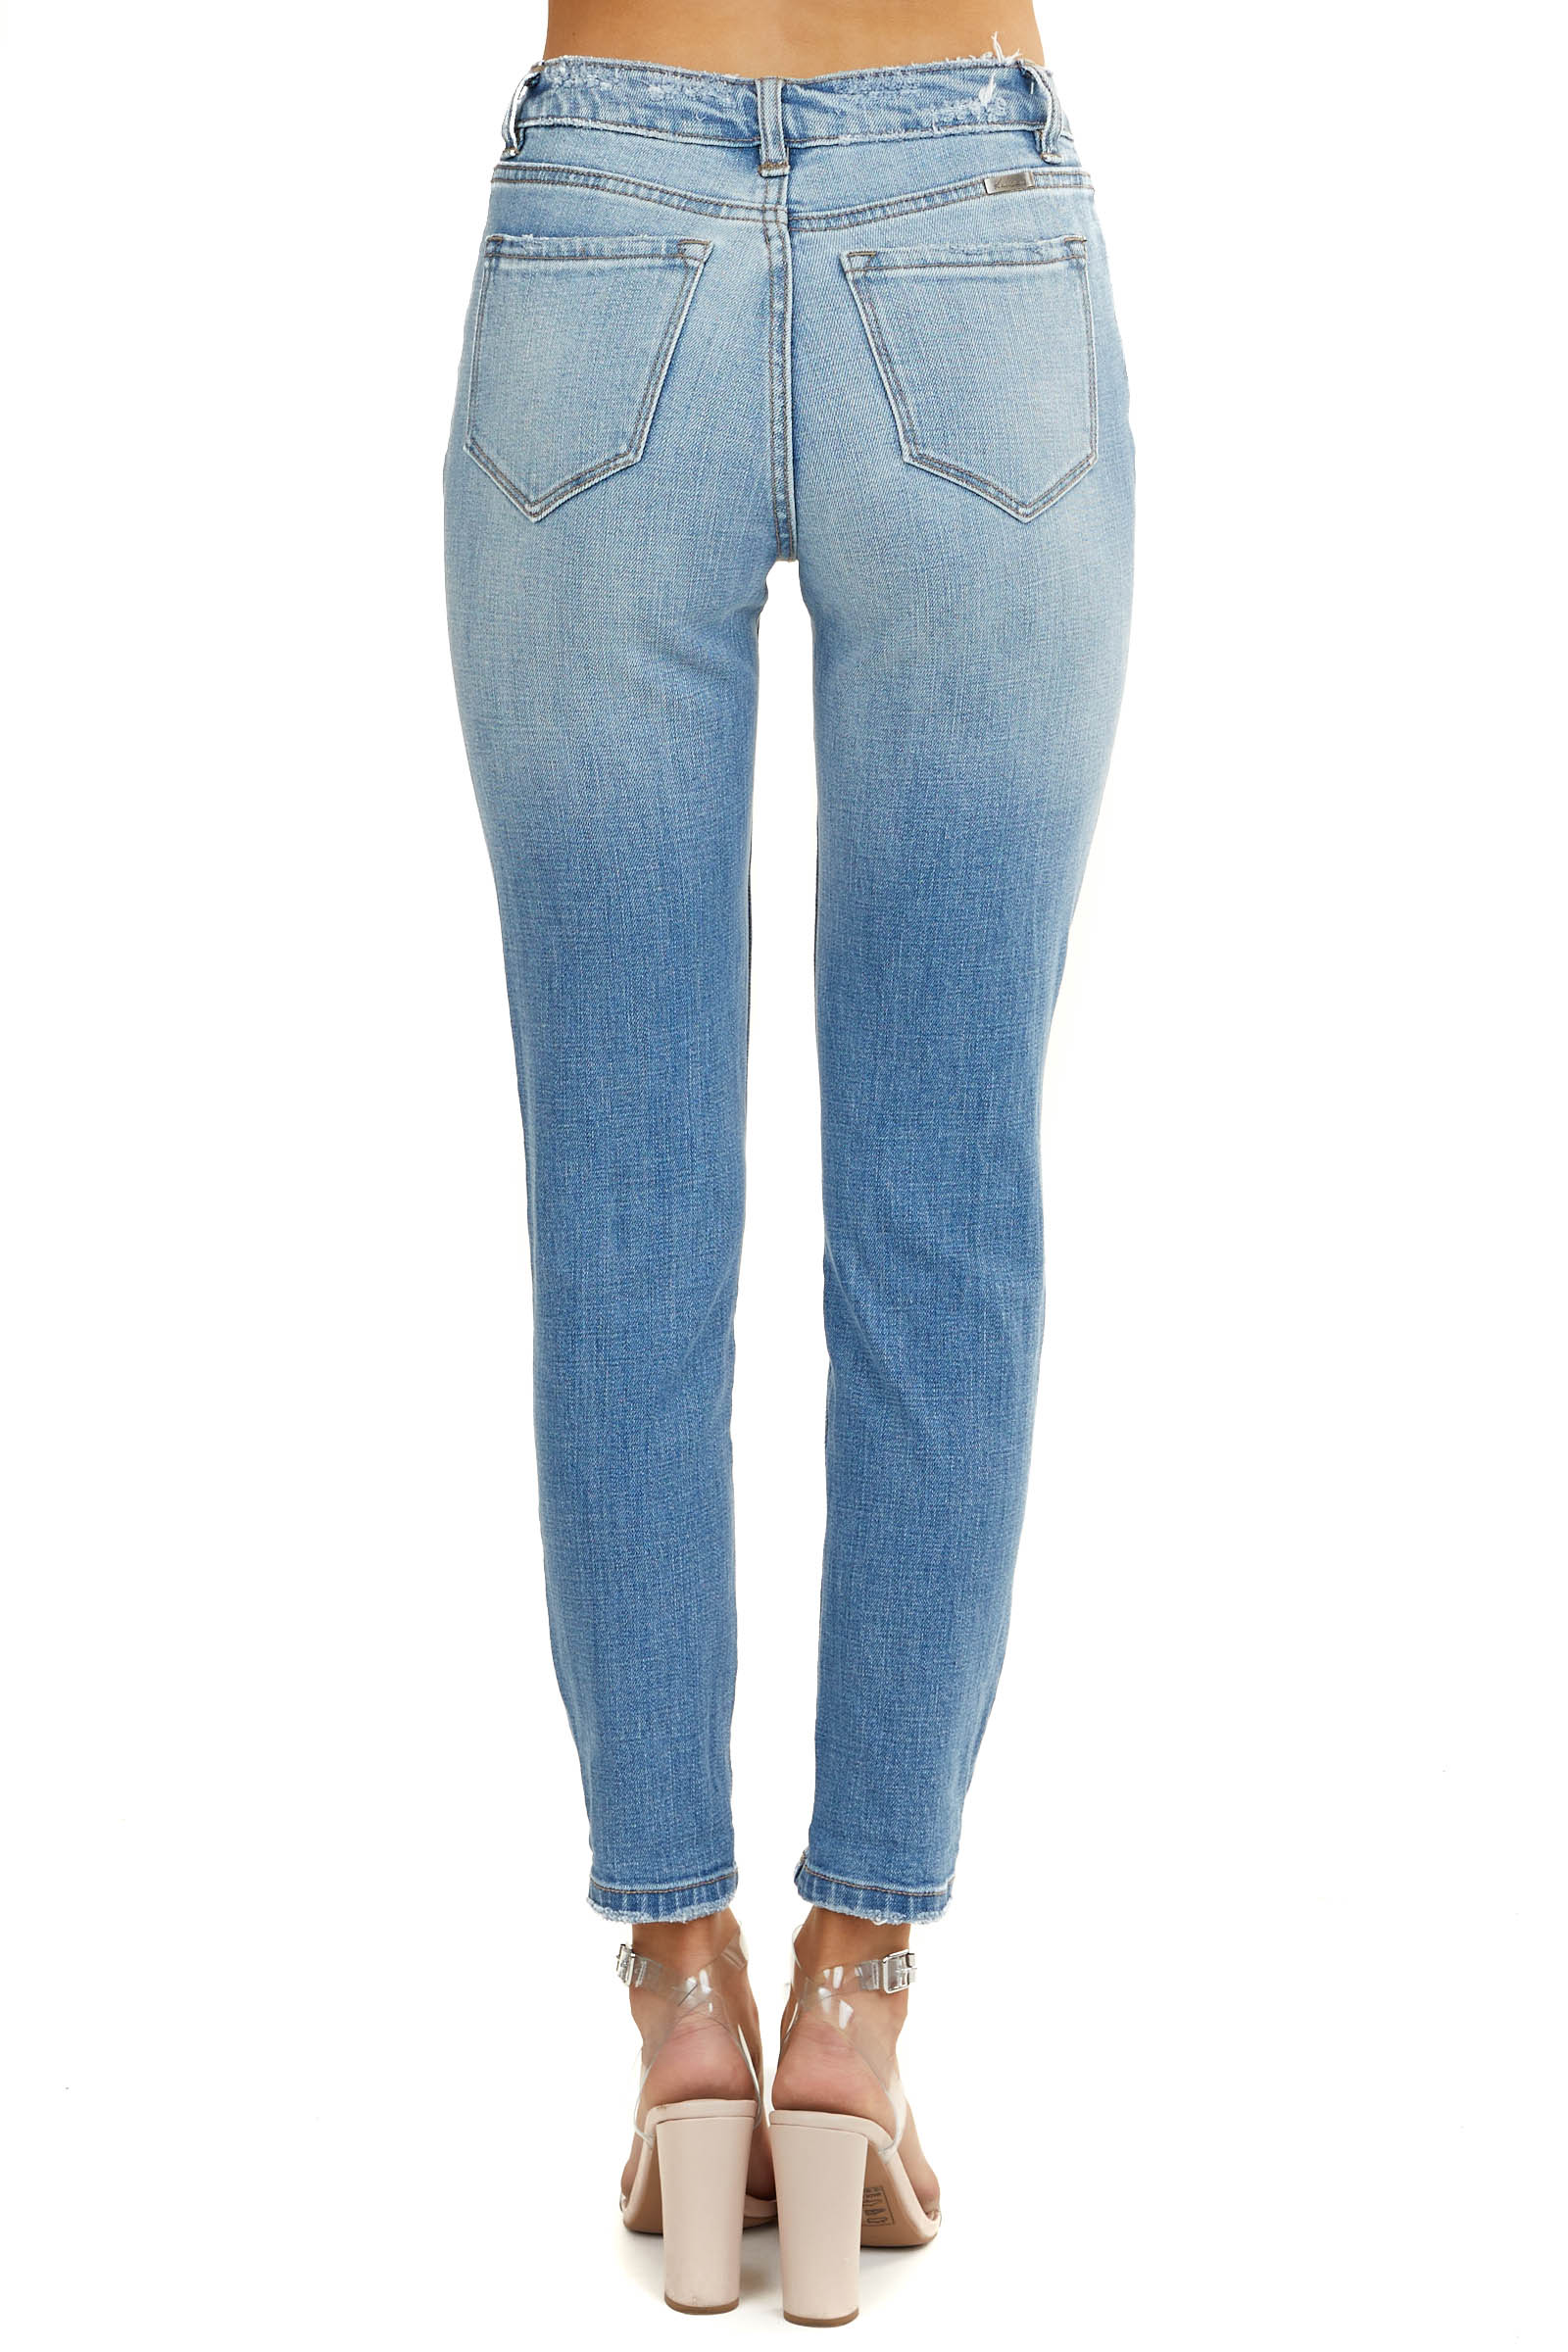 Light Wash Mid Rise Boyfriend Jeans with Leopard Patches